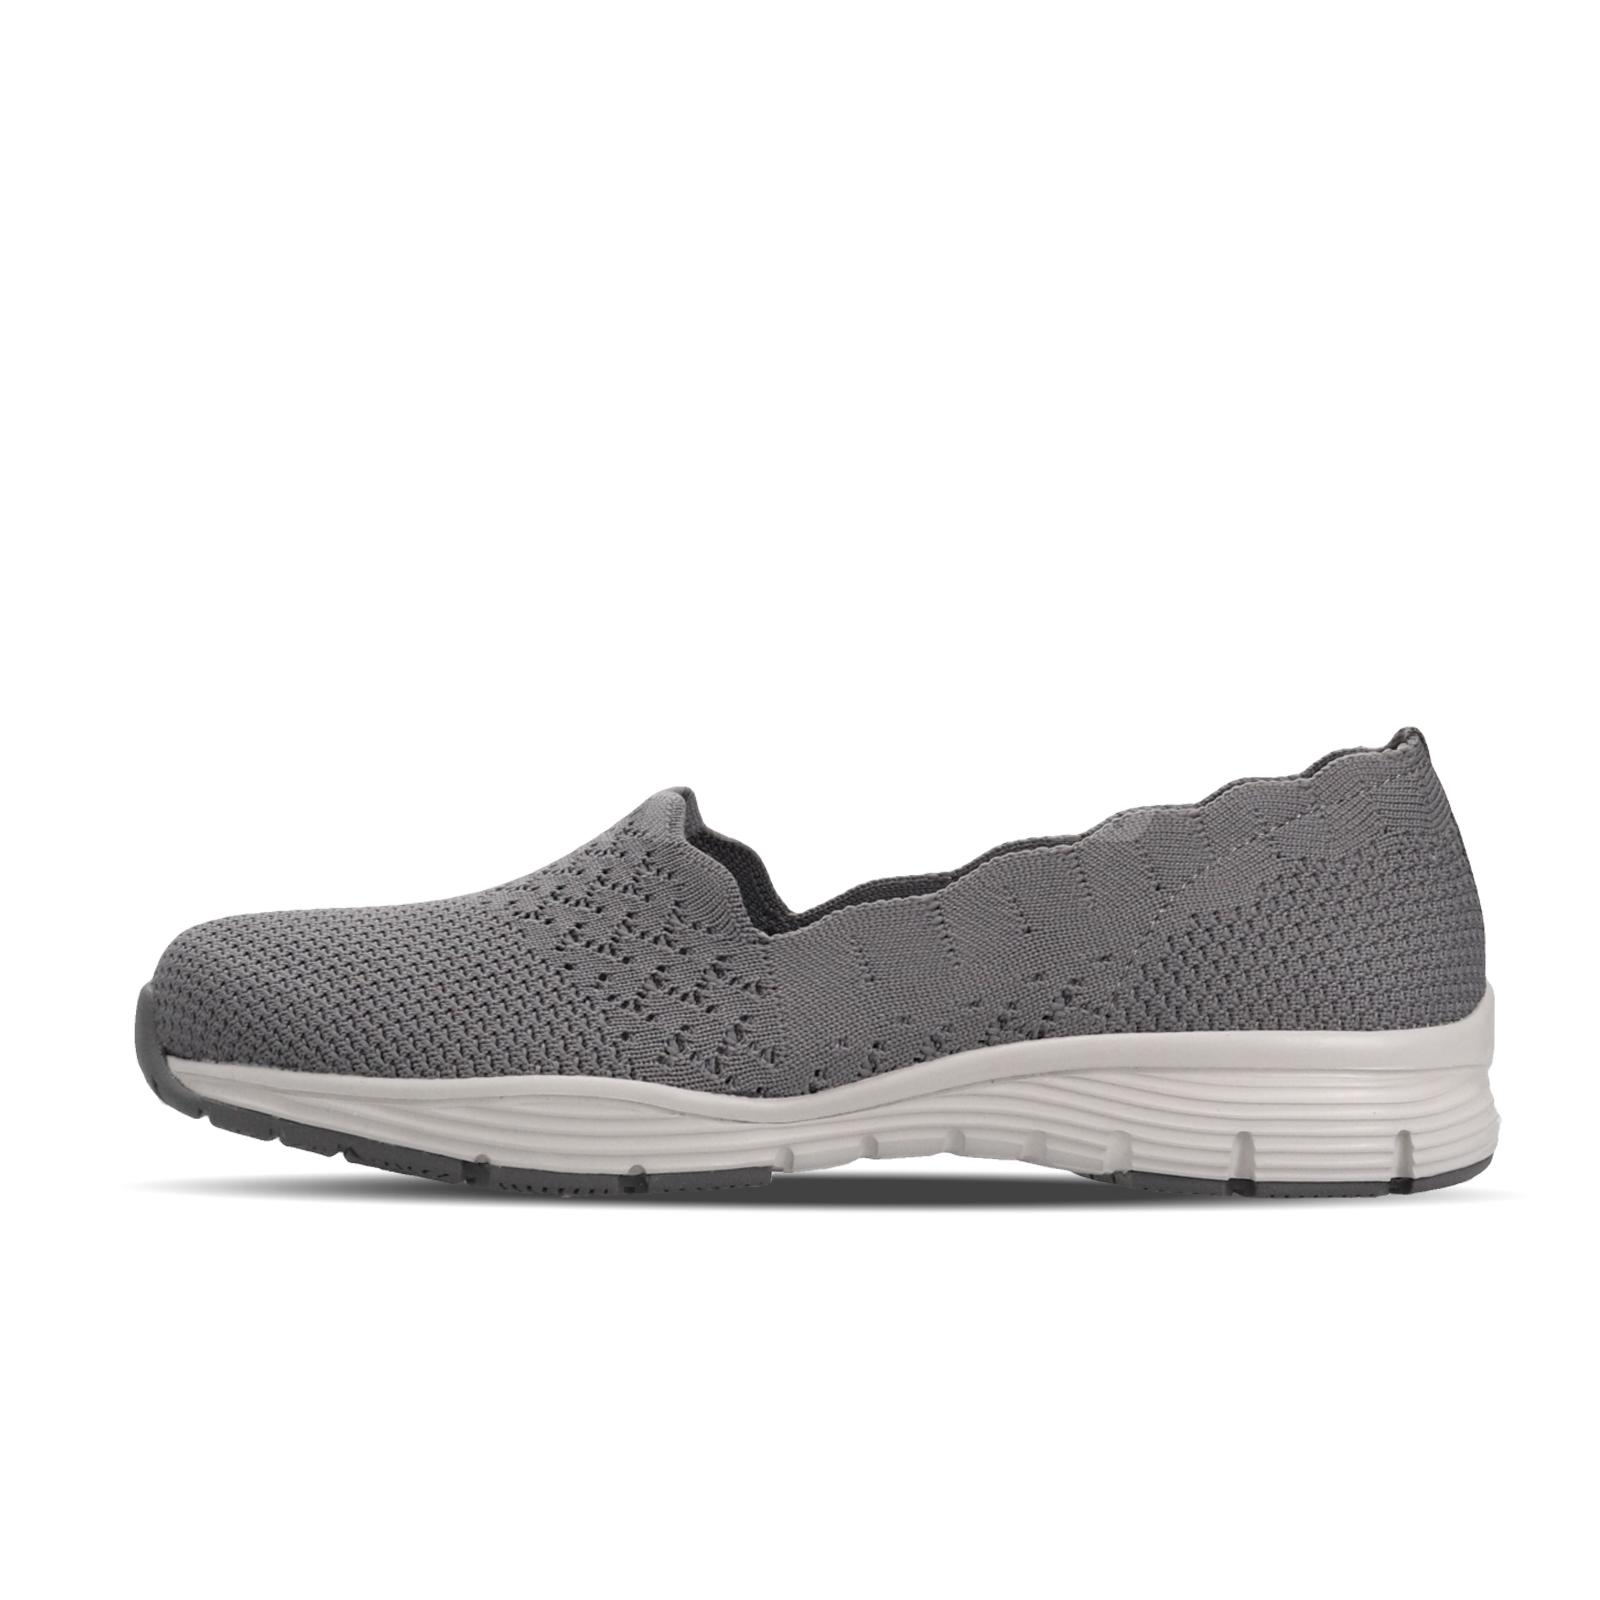 Details about Skechers Seager Stat Grey White Women Slip On Casual Shoes Loafers 49481 GRY